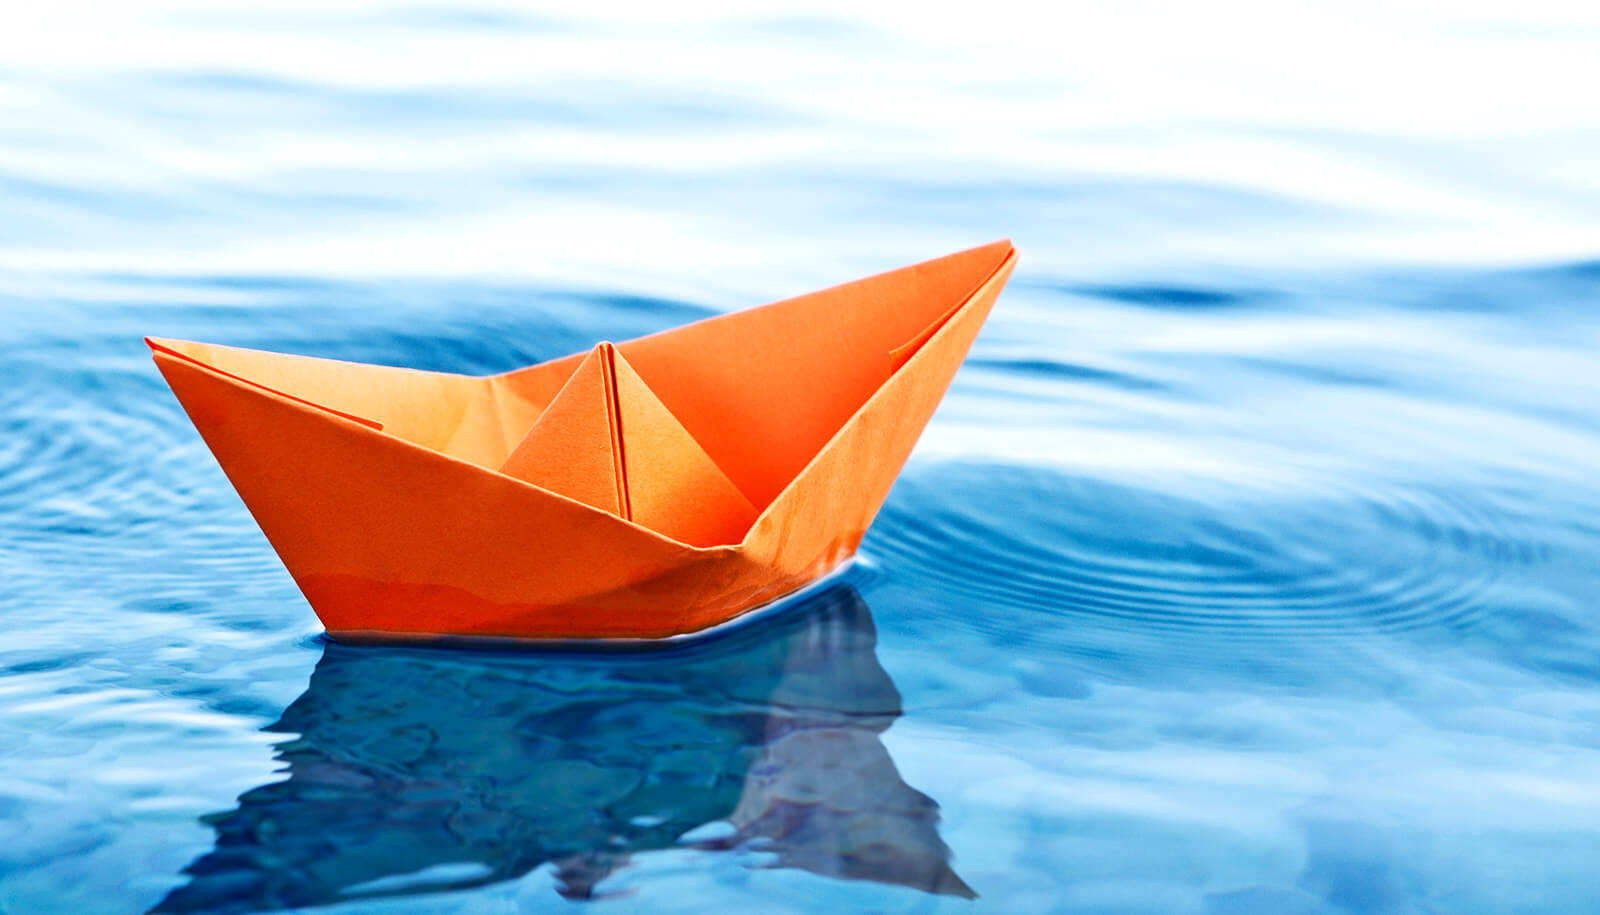 paper-boat-on-water_1600